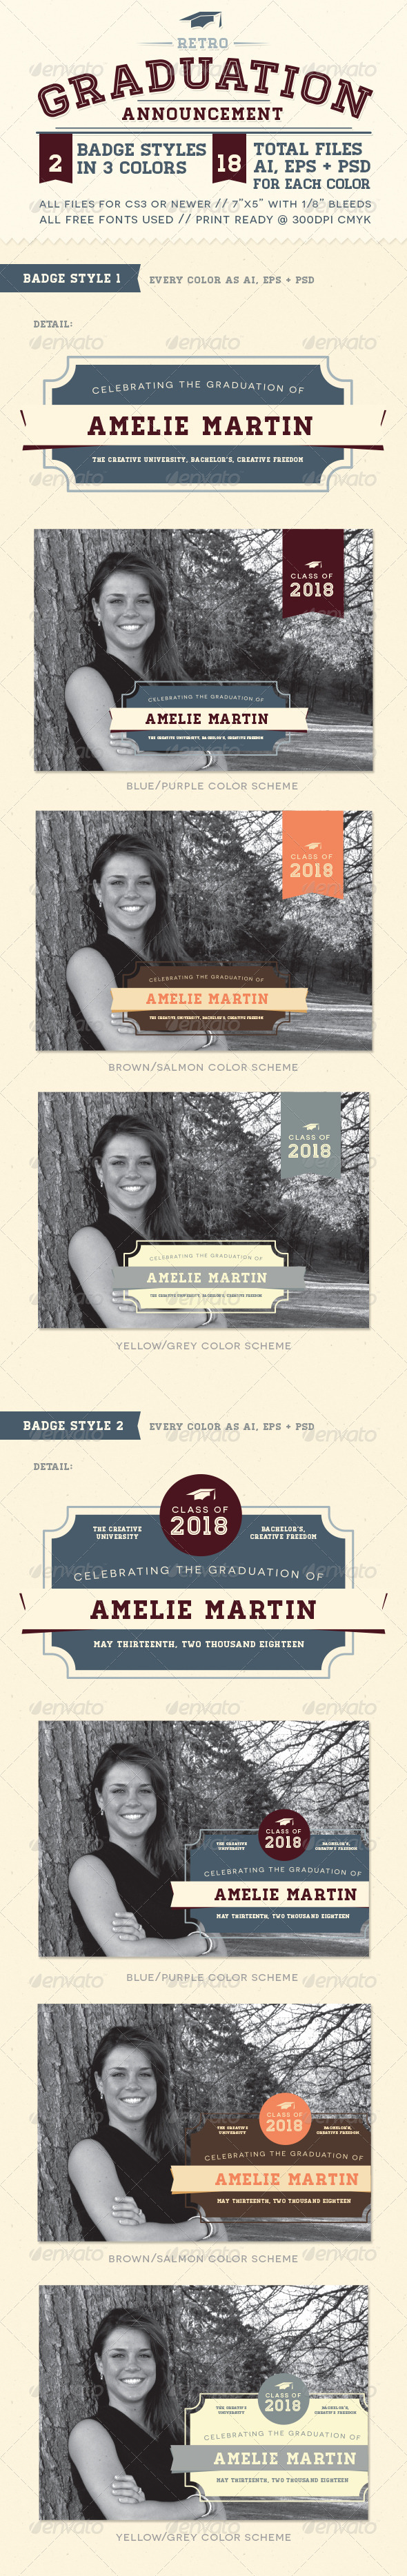 GraphicRiver Retro Graduation Announcement 7440890